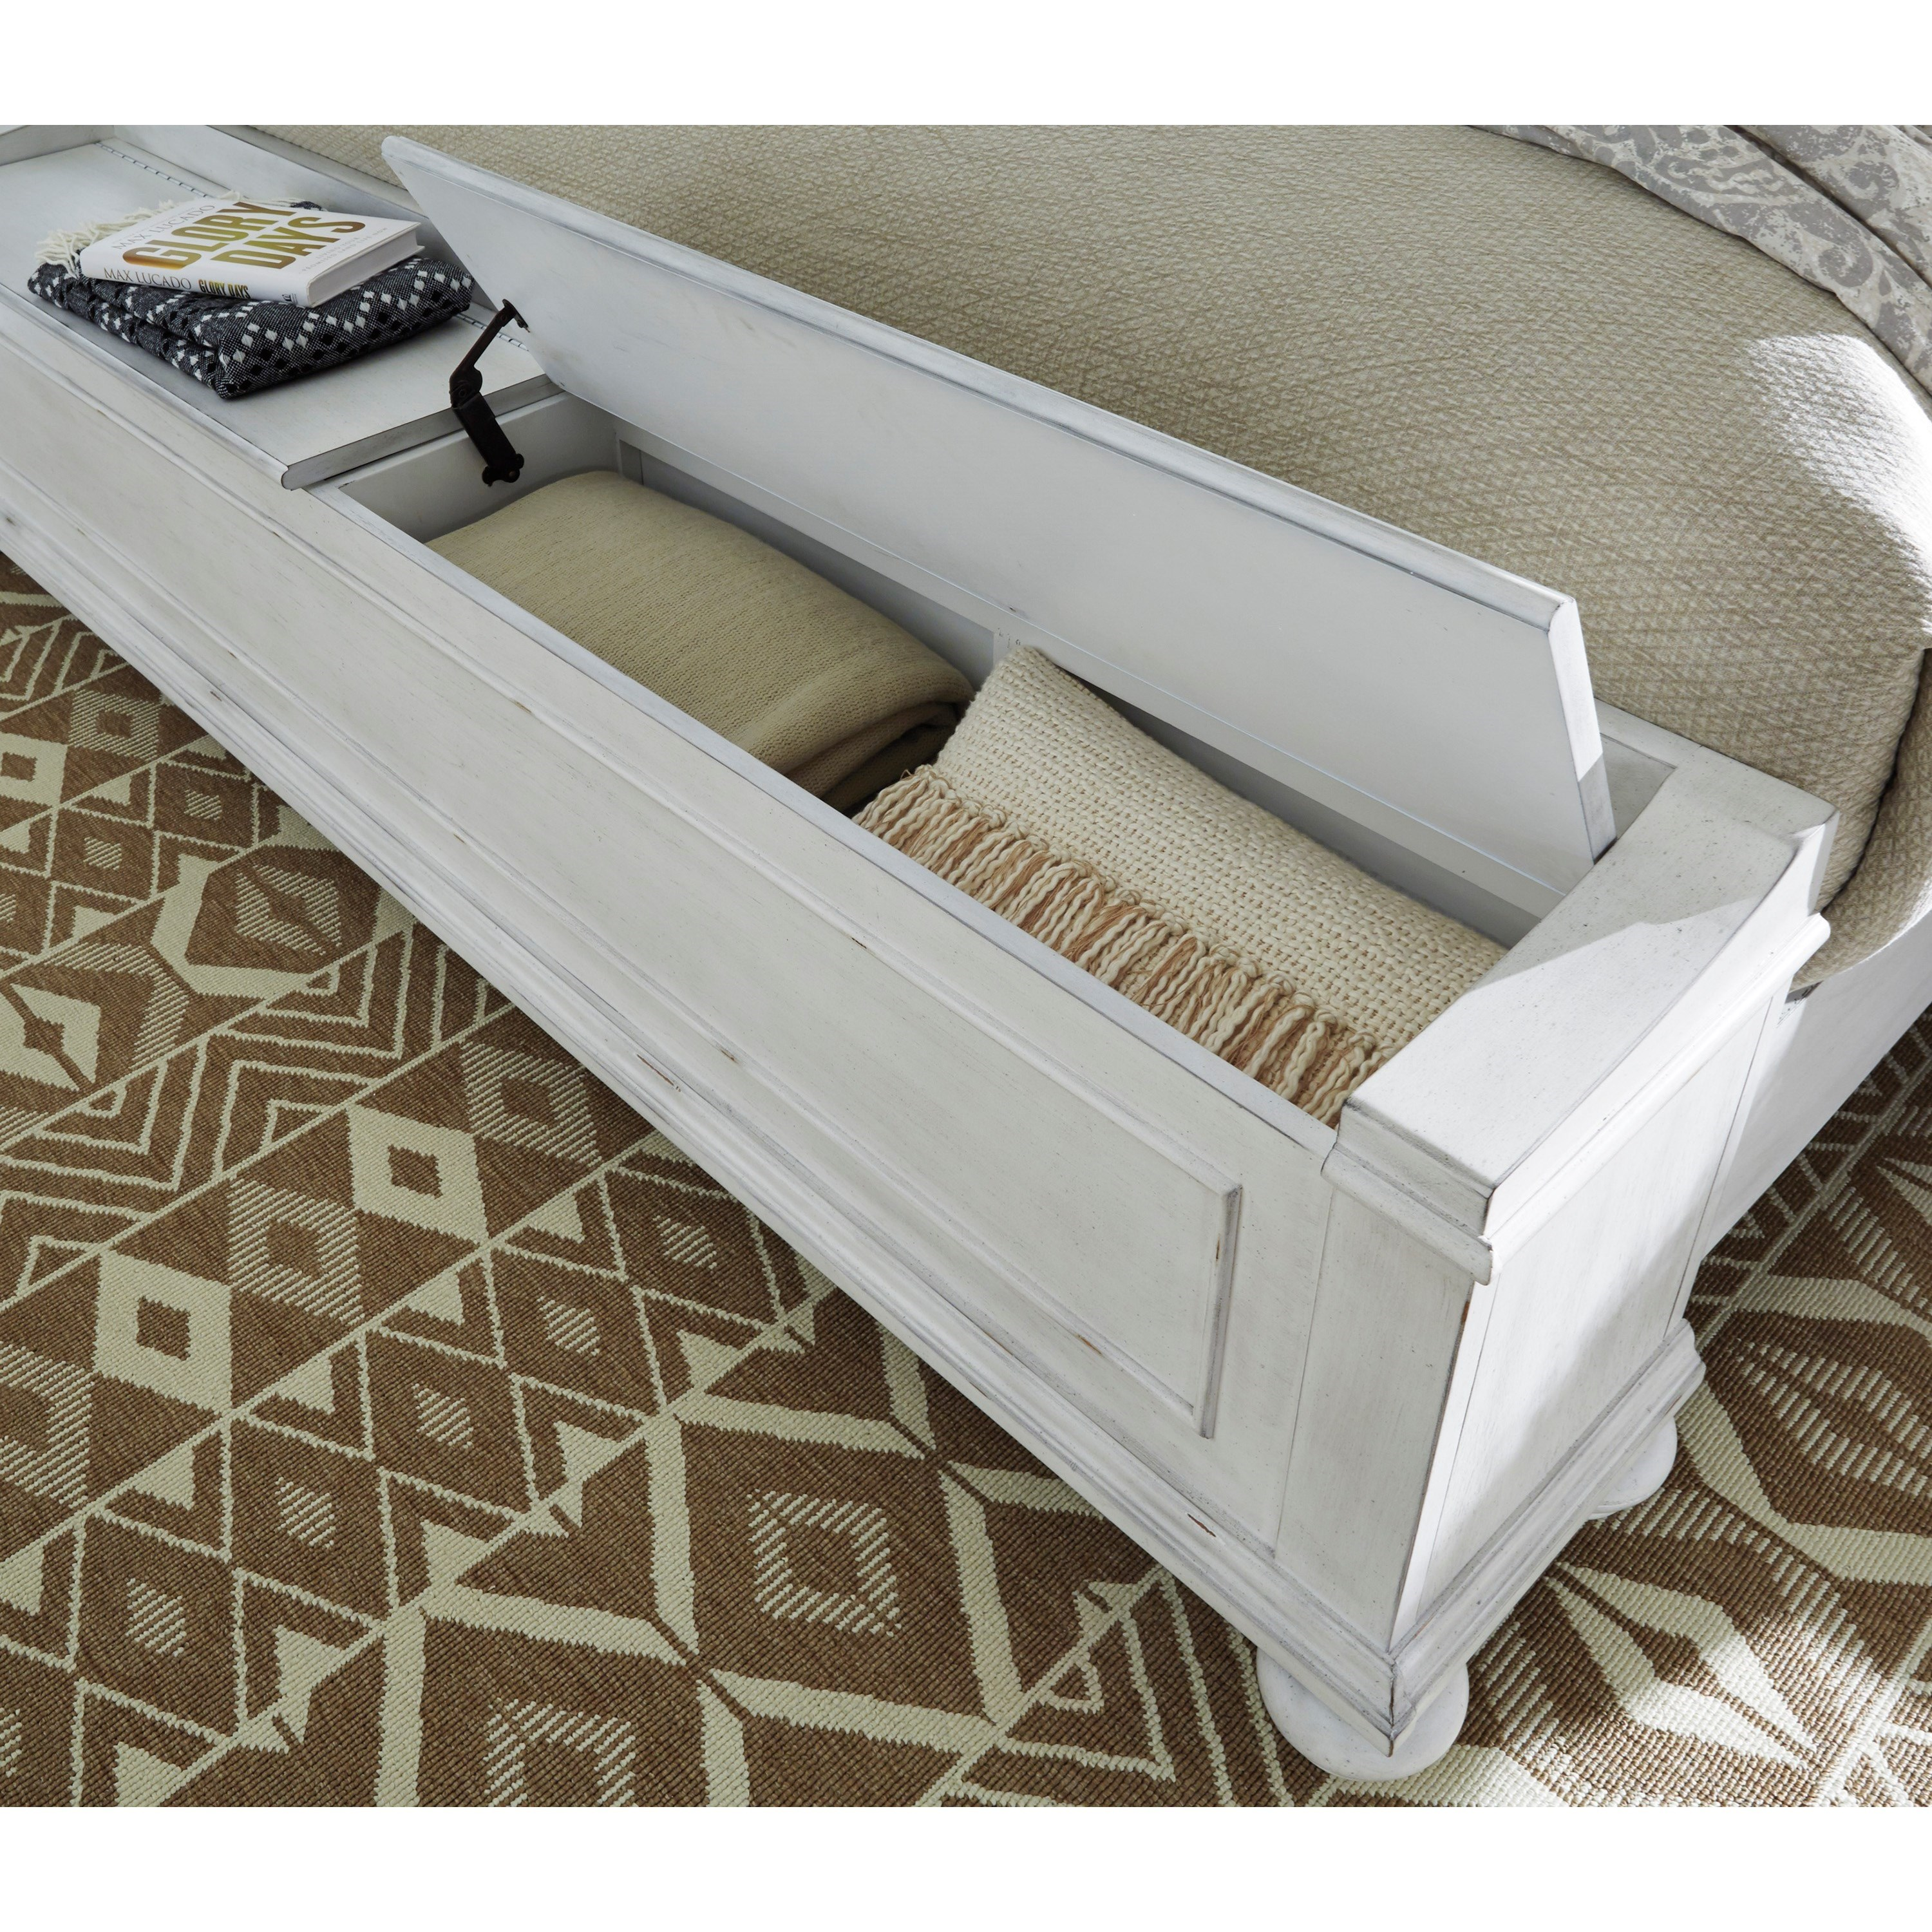 Bench By Bed: Benchcraft By Ashley Kanwyn Relaxed Vintage King